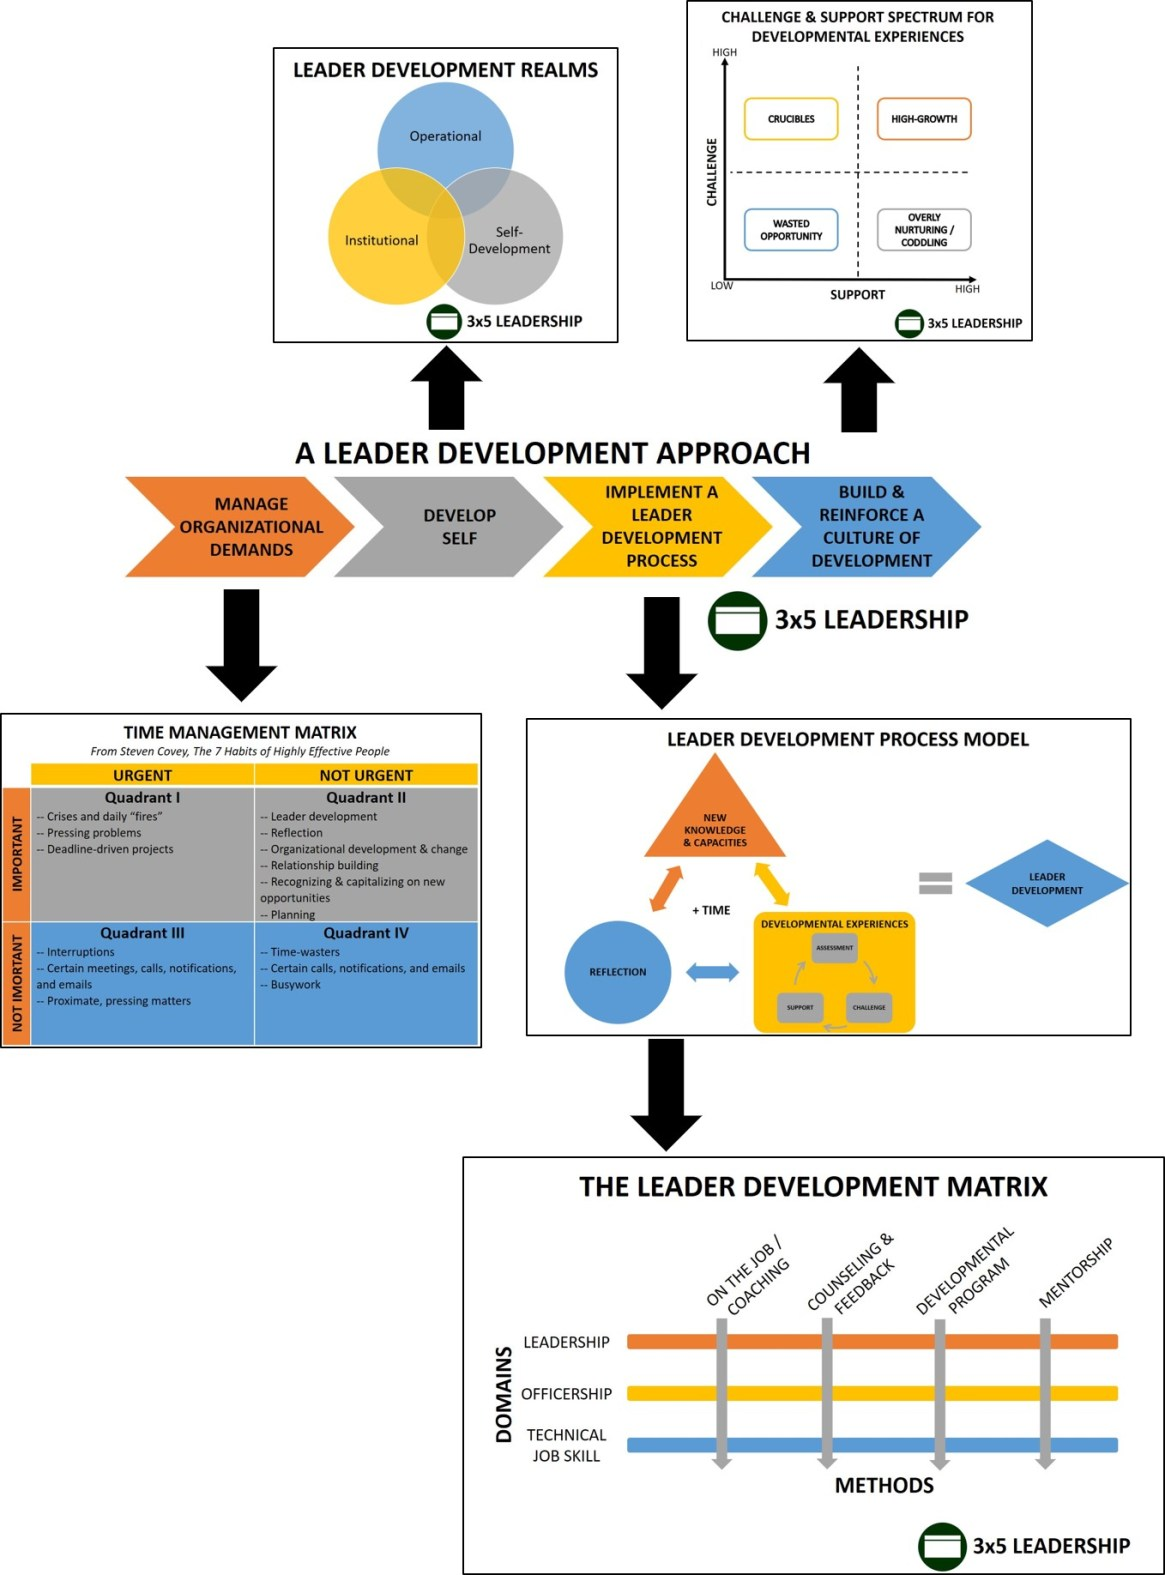 Leader Development Approach Detailed Concept Graphic_3x5 Leadership